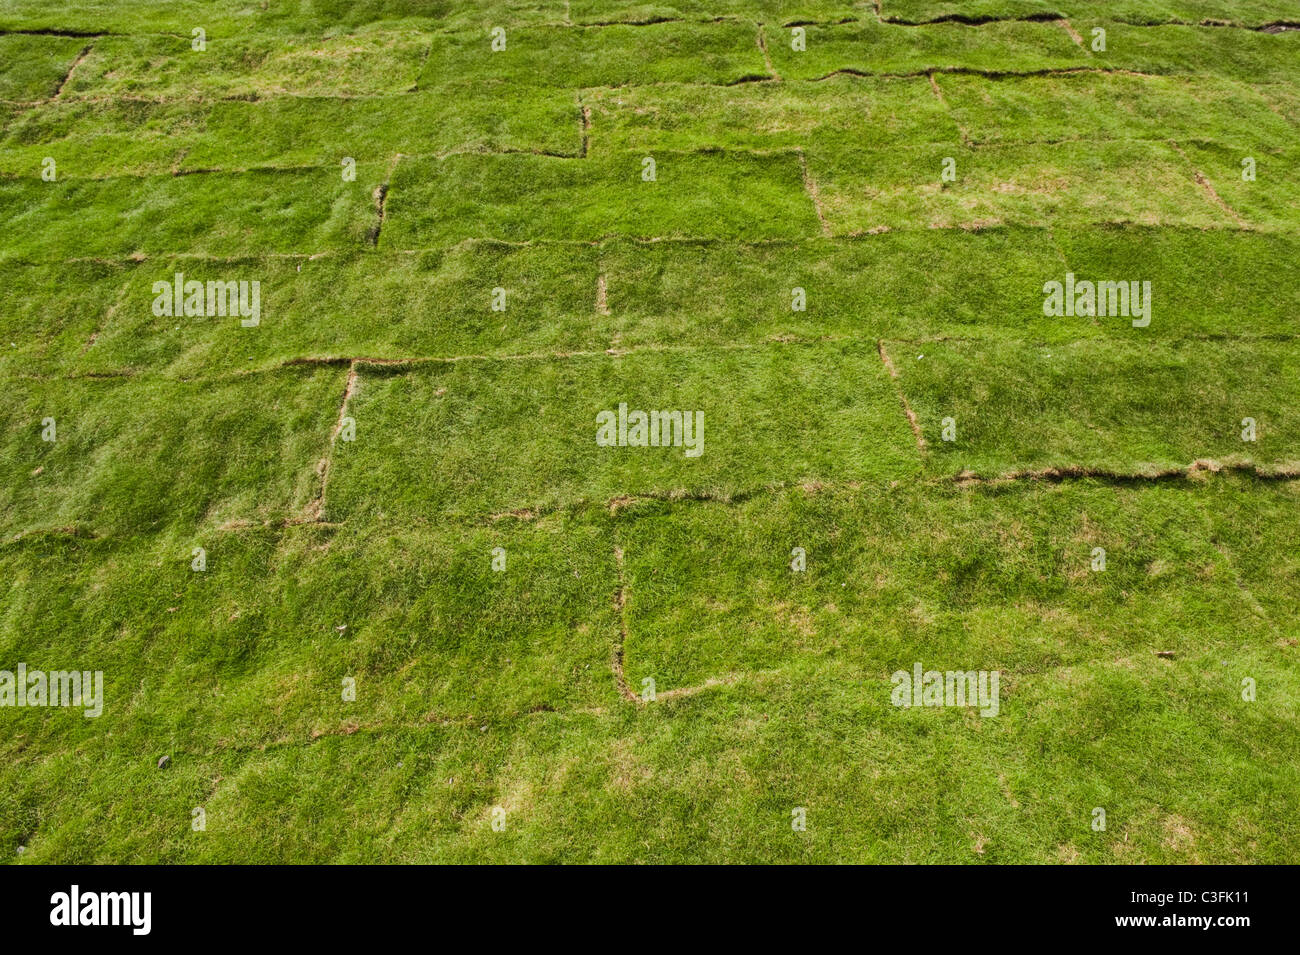 Newly laid grass turf to create a lawn - Stock Image